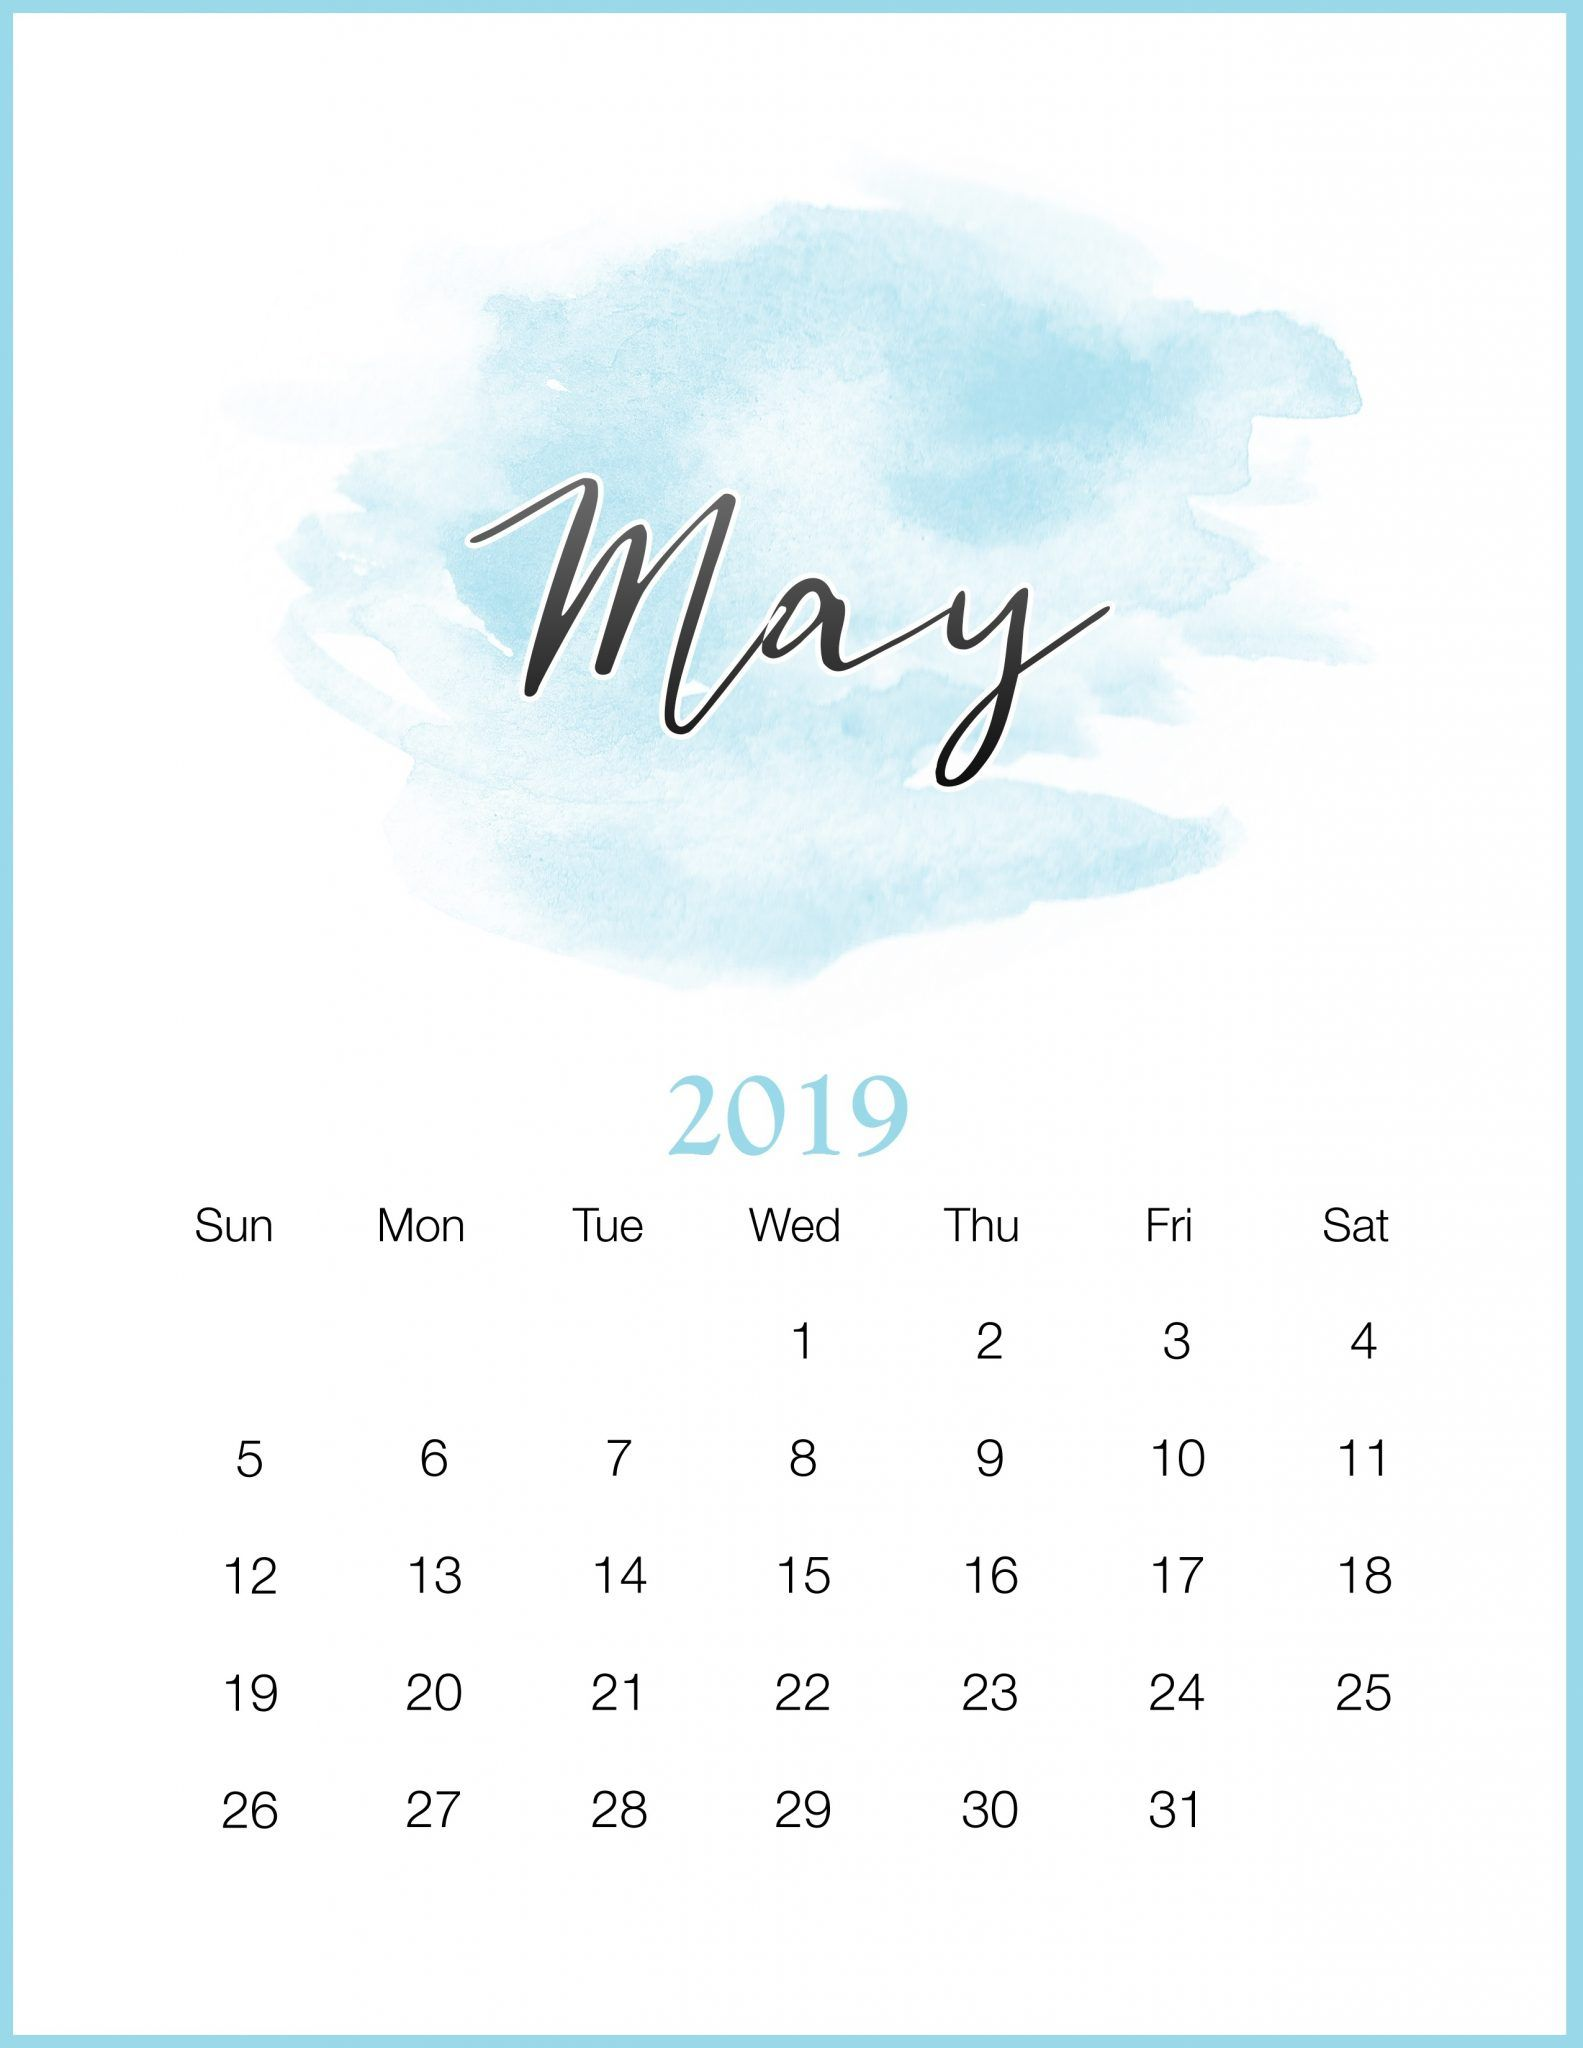 Cute May 2020 Calendar Wallpaper Floral Pink Design For Desktop